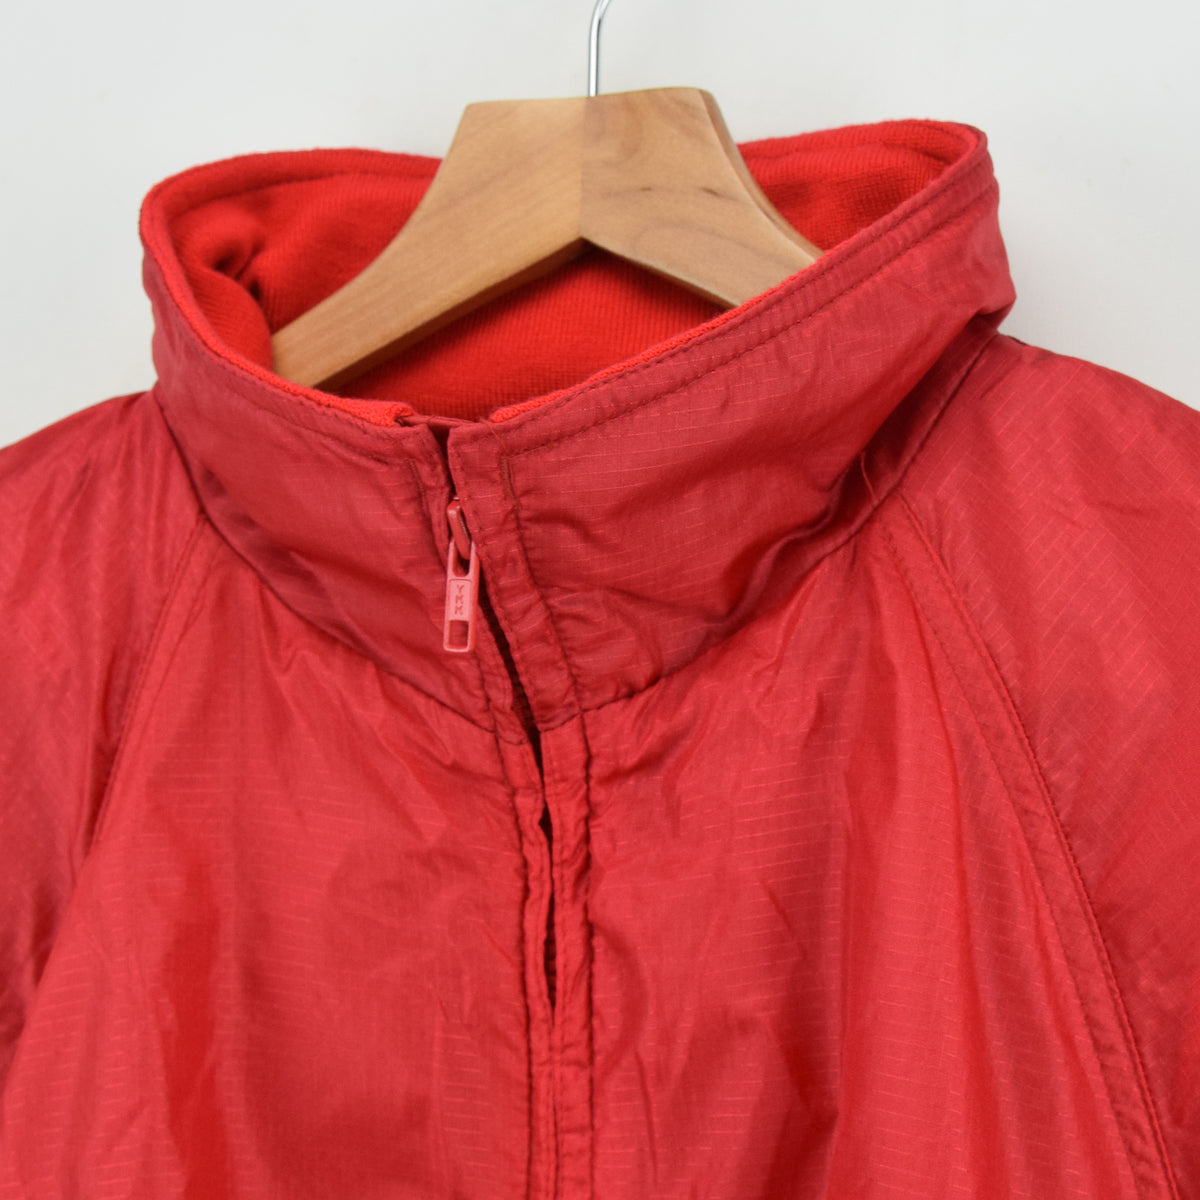 Eddie Bauer Red Hooded Nylon Ripstop Packaway Cagoule Jacket L collar